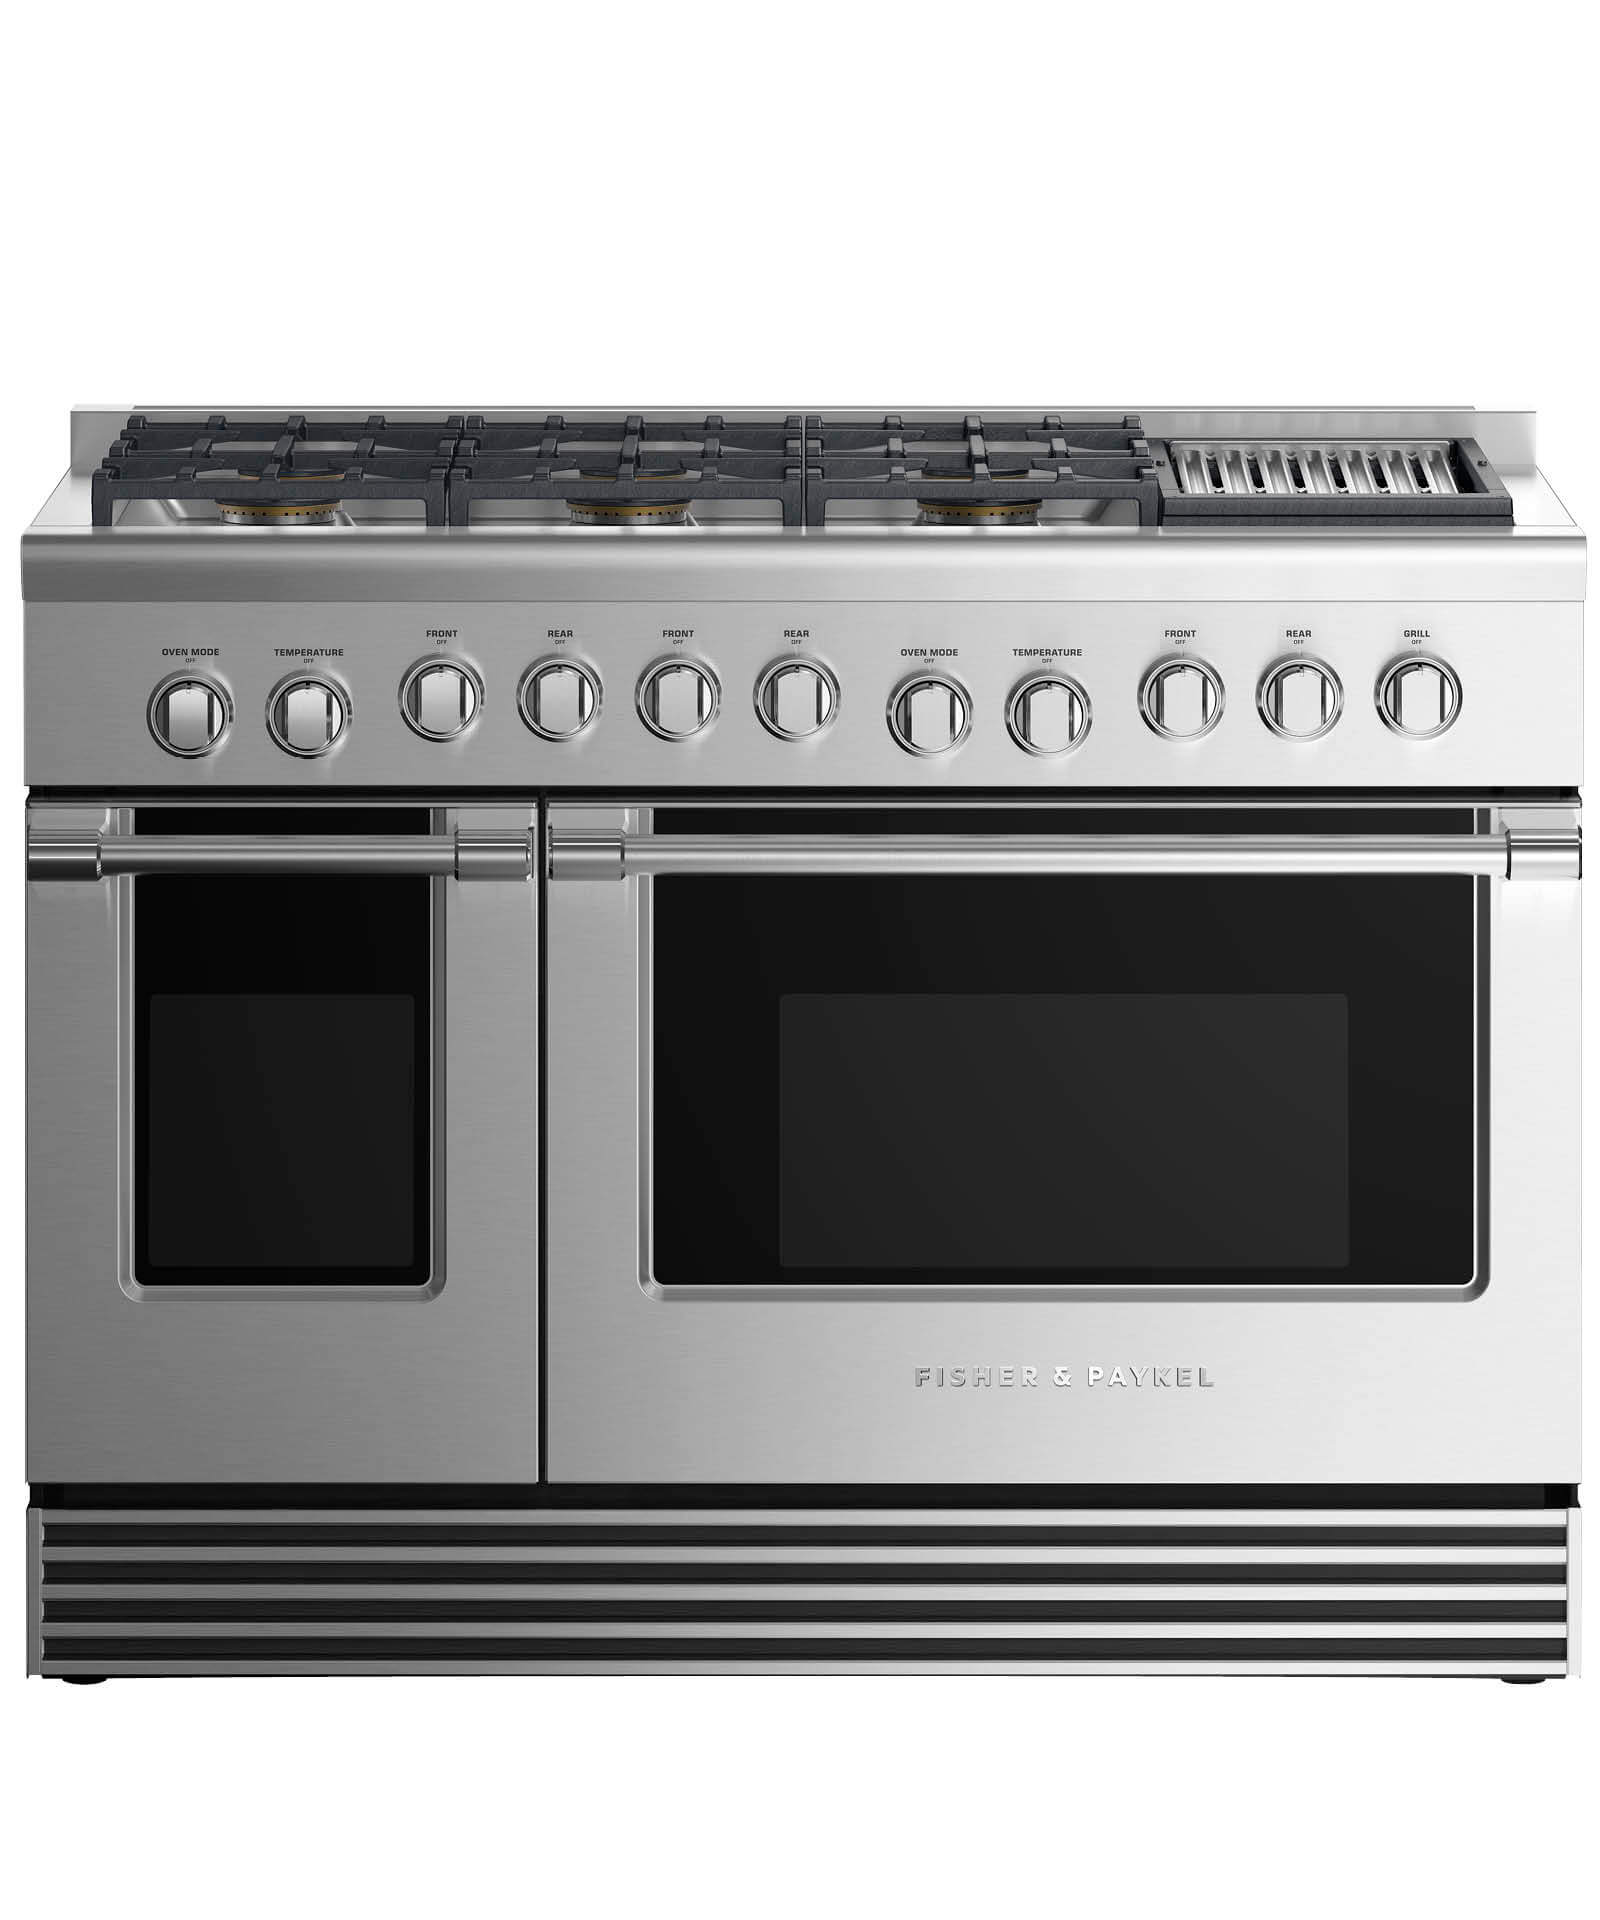 "Fisher and Paykel Gas Range 48"", 6 Burners with Grill (LPG)"